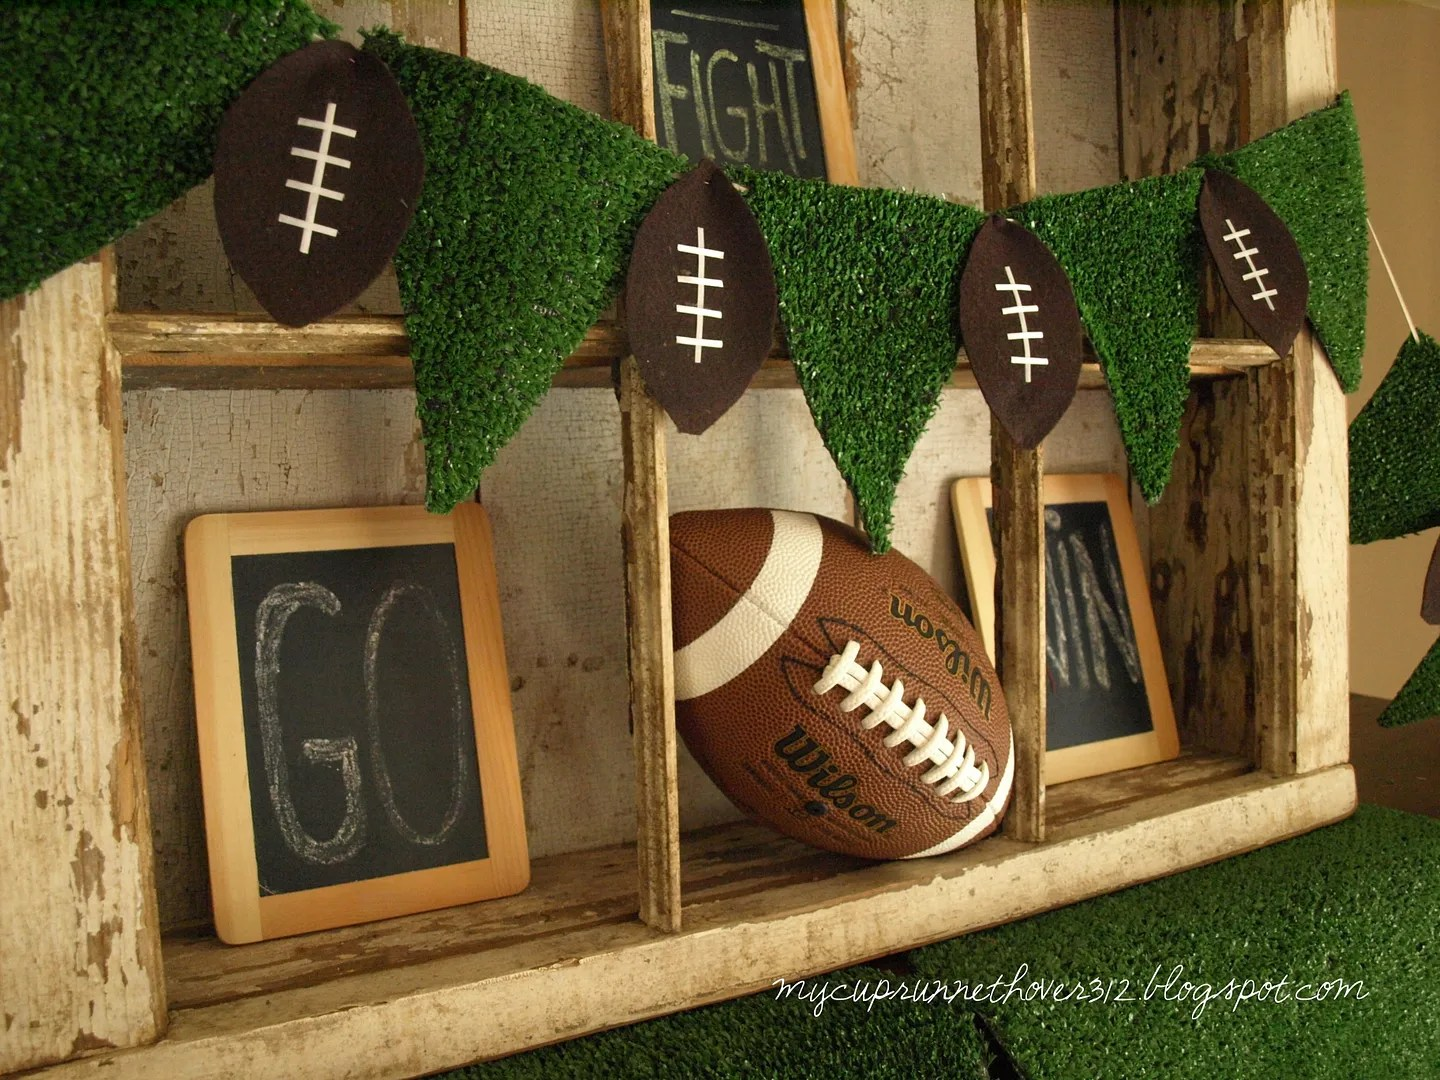 Super Bowl Party Decor And Free Football Subway Art. Seafoam Green Decorating Ideas. Restaurant Decorating Ideas. Dining Room Table Round. Theatre Room Ideas. Metal Decorative Panels. Nautical Themed Baby Shower Decorations. Indian Restaurant Decor Design. Ebay Dining Room Sets